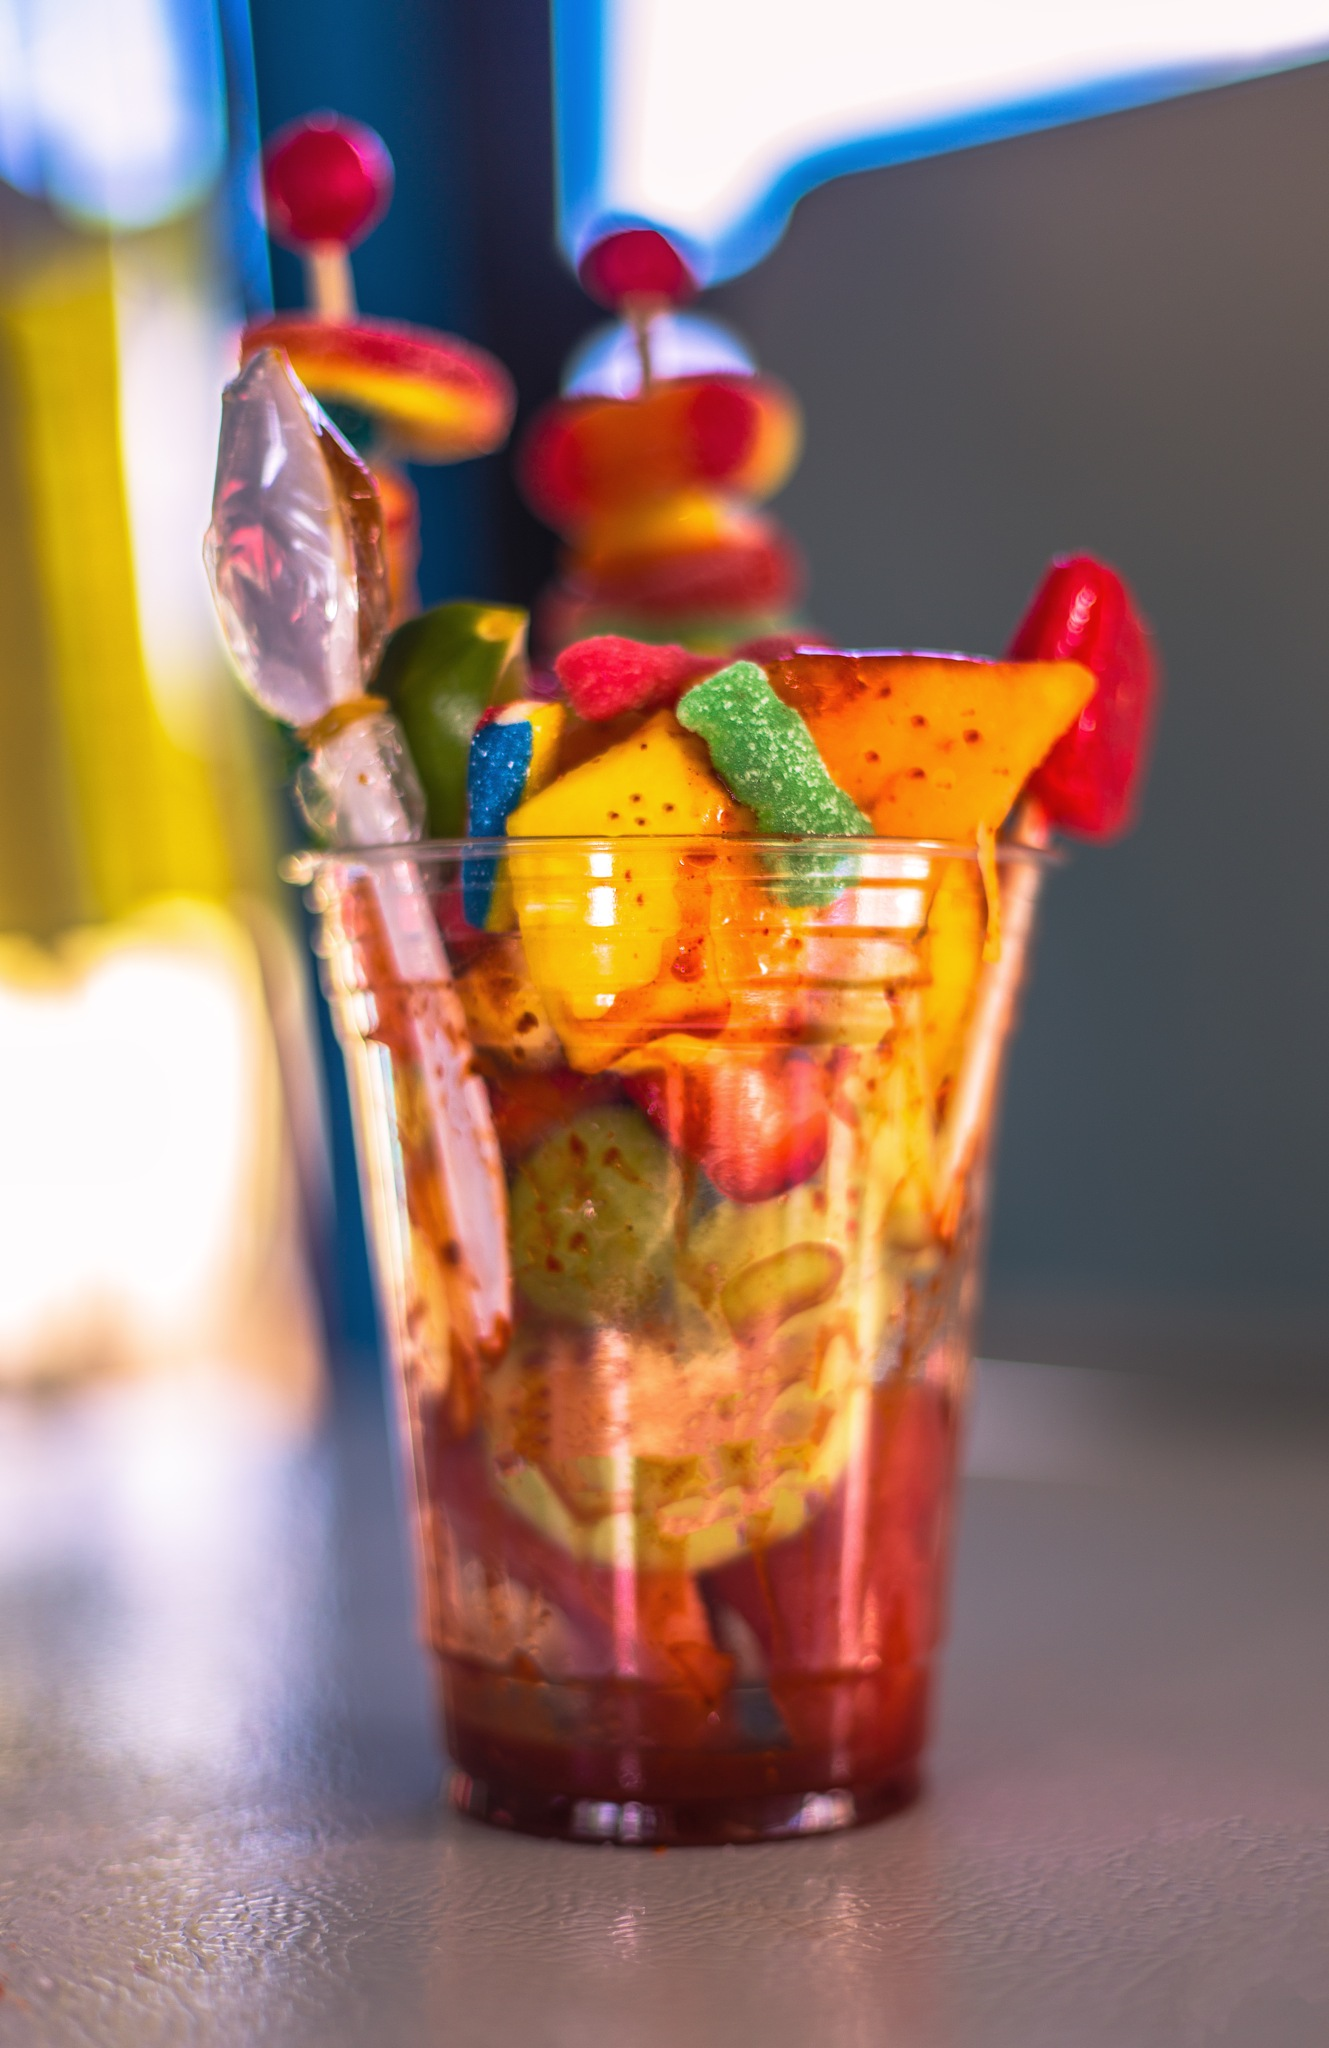 Fruit Cup by Lane L Gibson